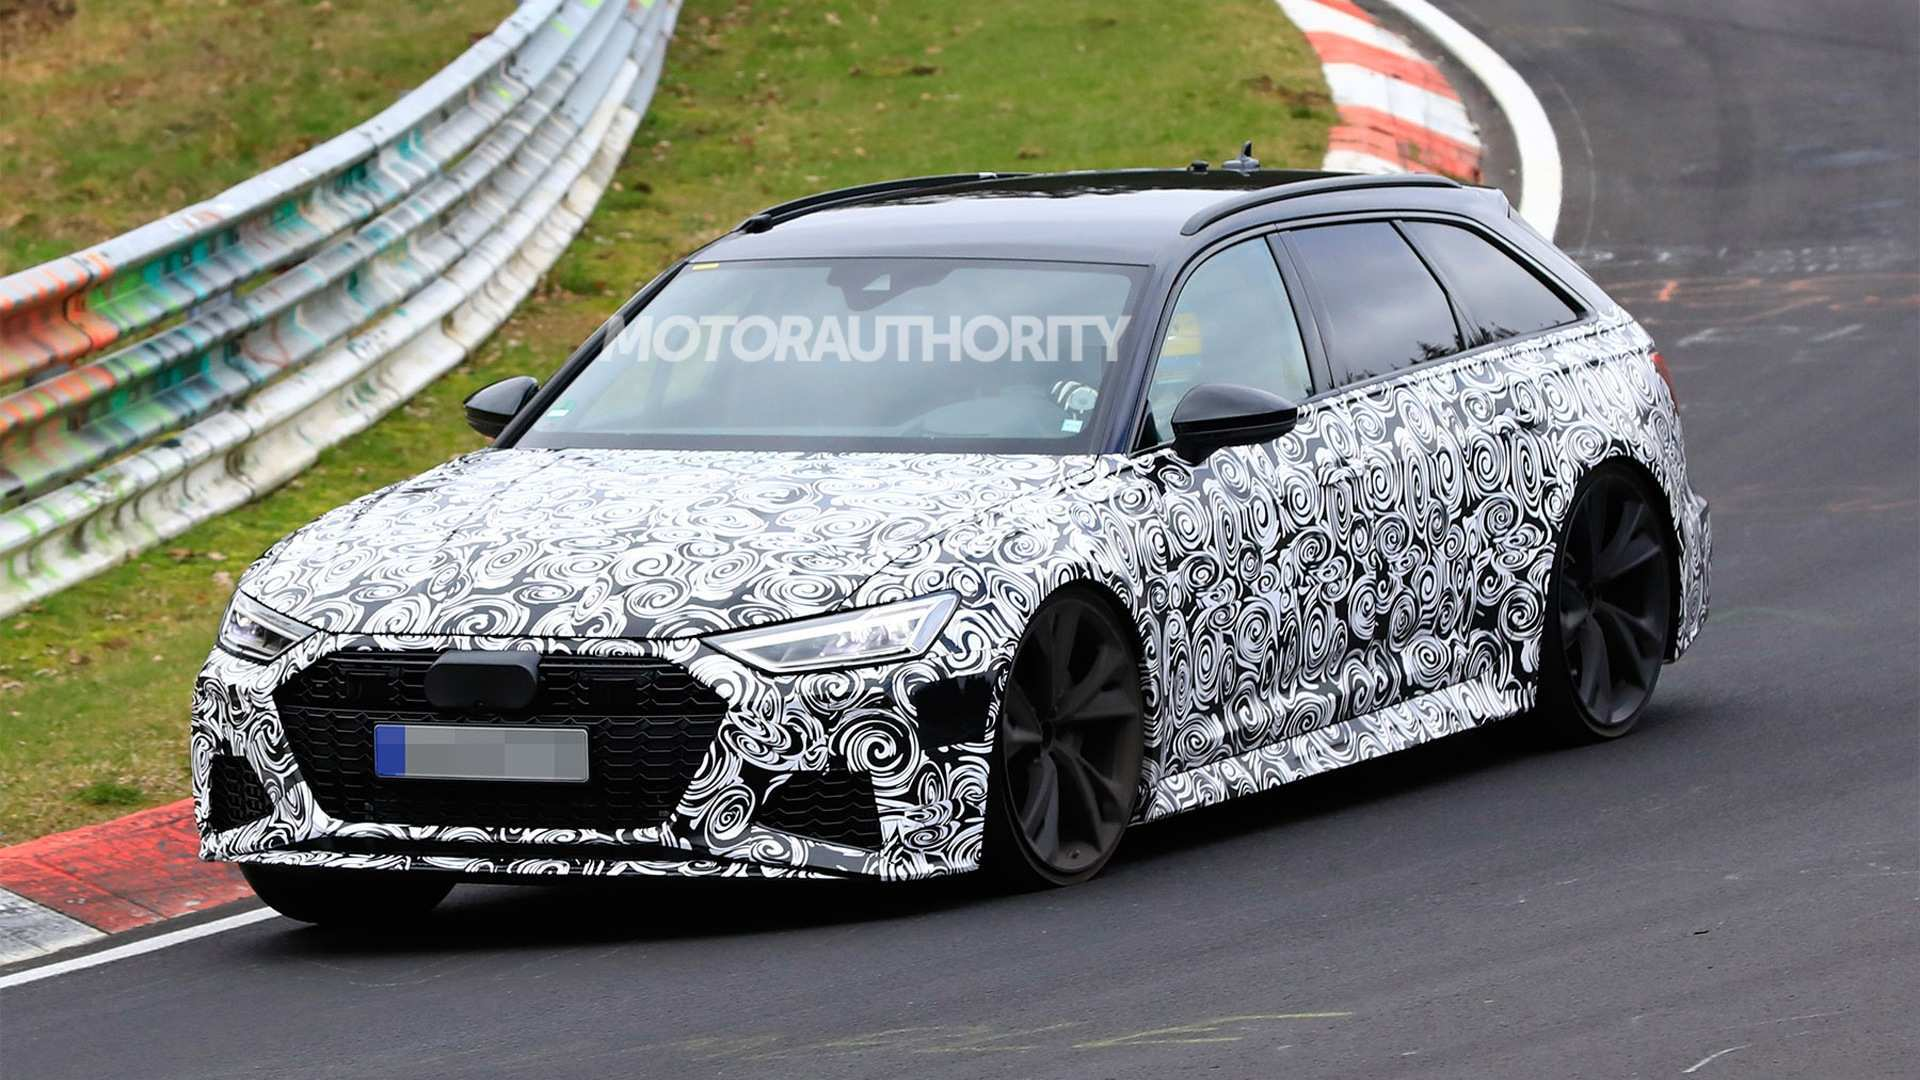 41 Concept of 2020 Audi Rs6 Avant Usa Price and Review with 2020 Audi Rs6 Avant Usa